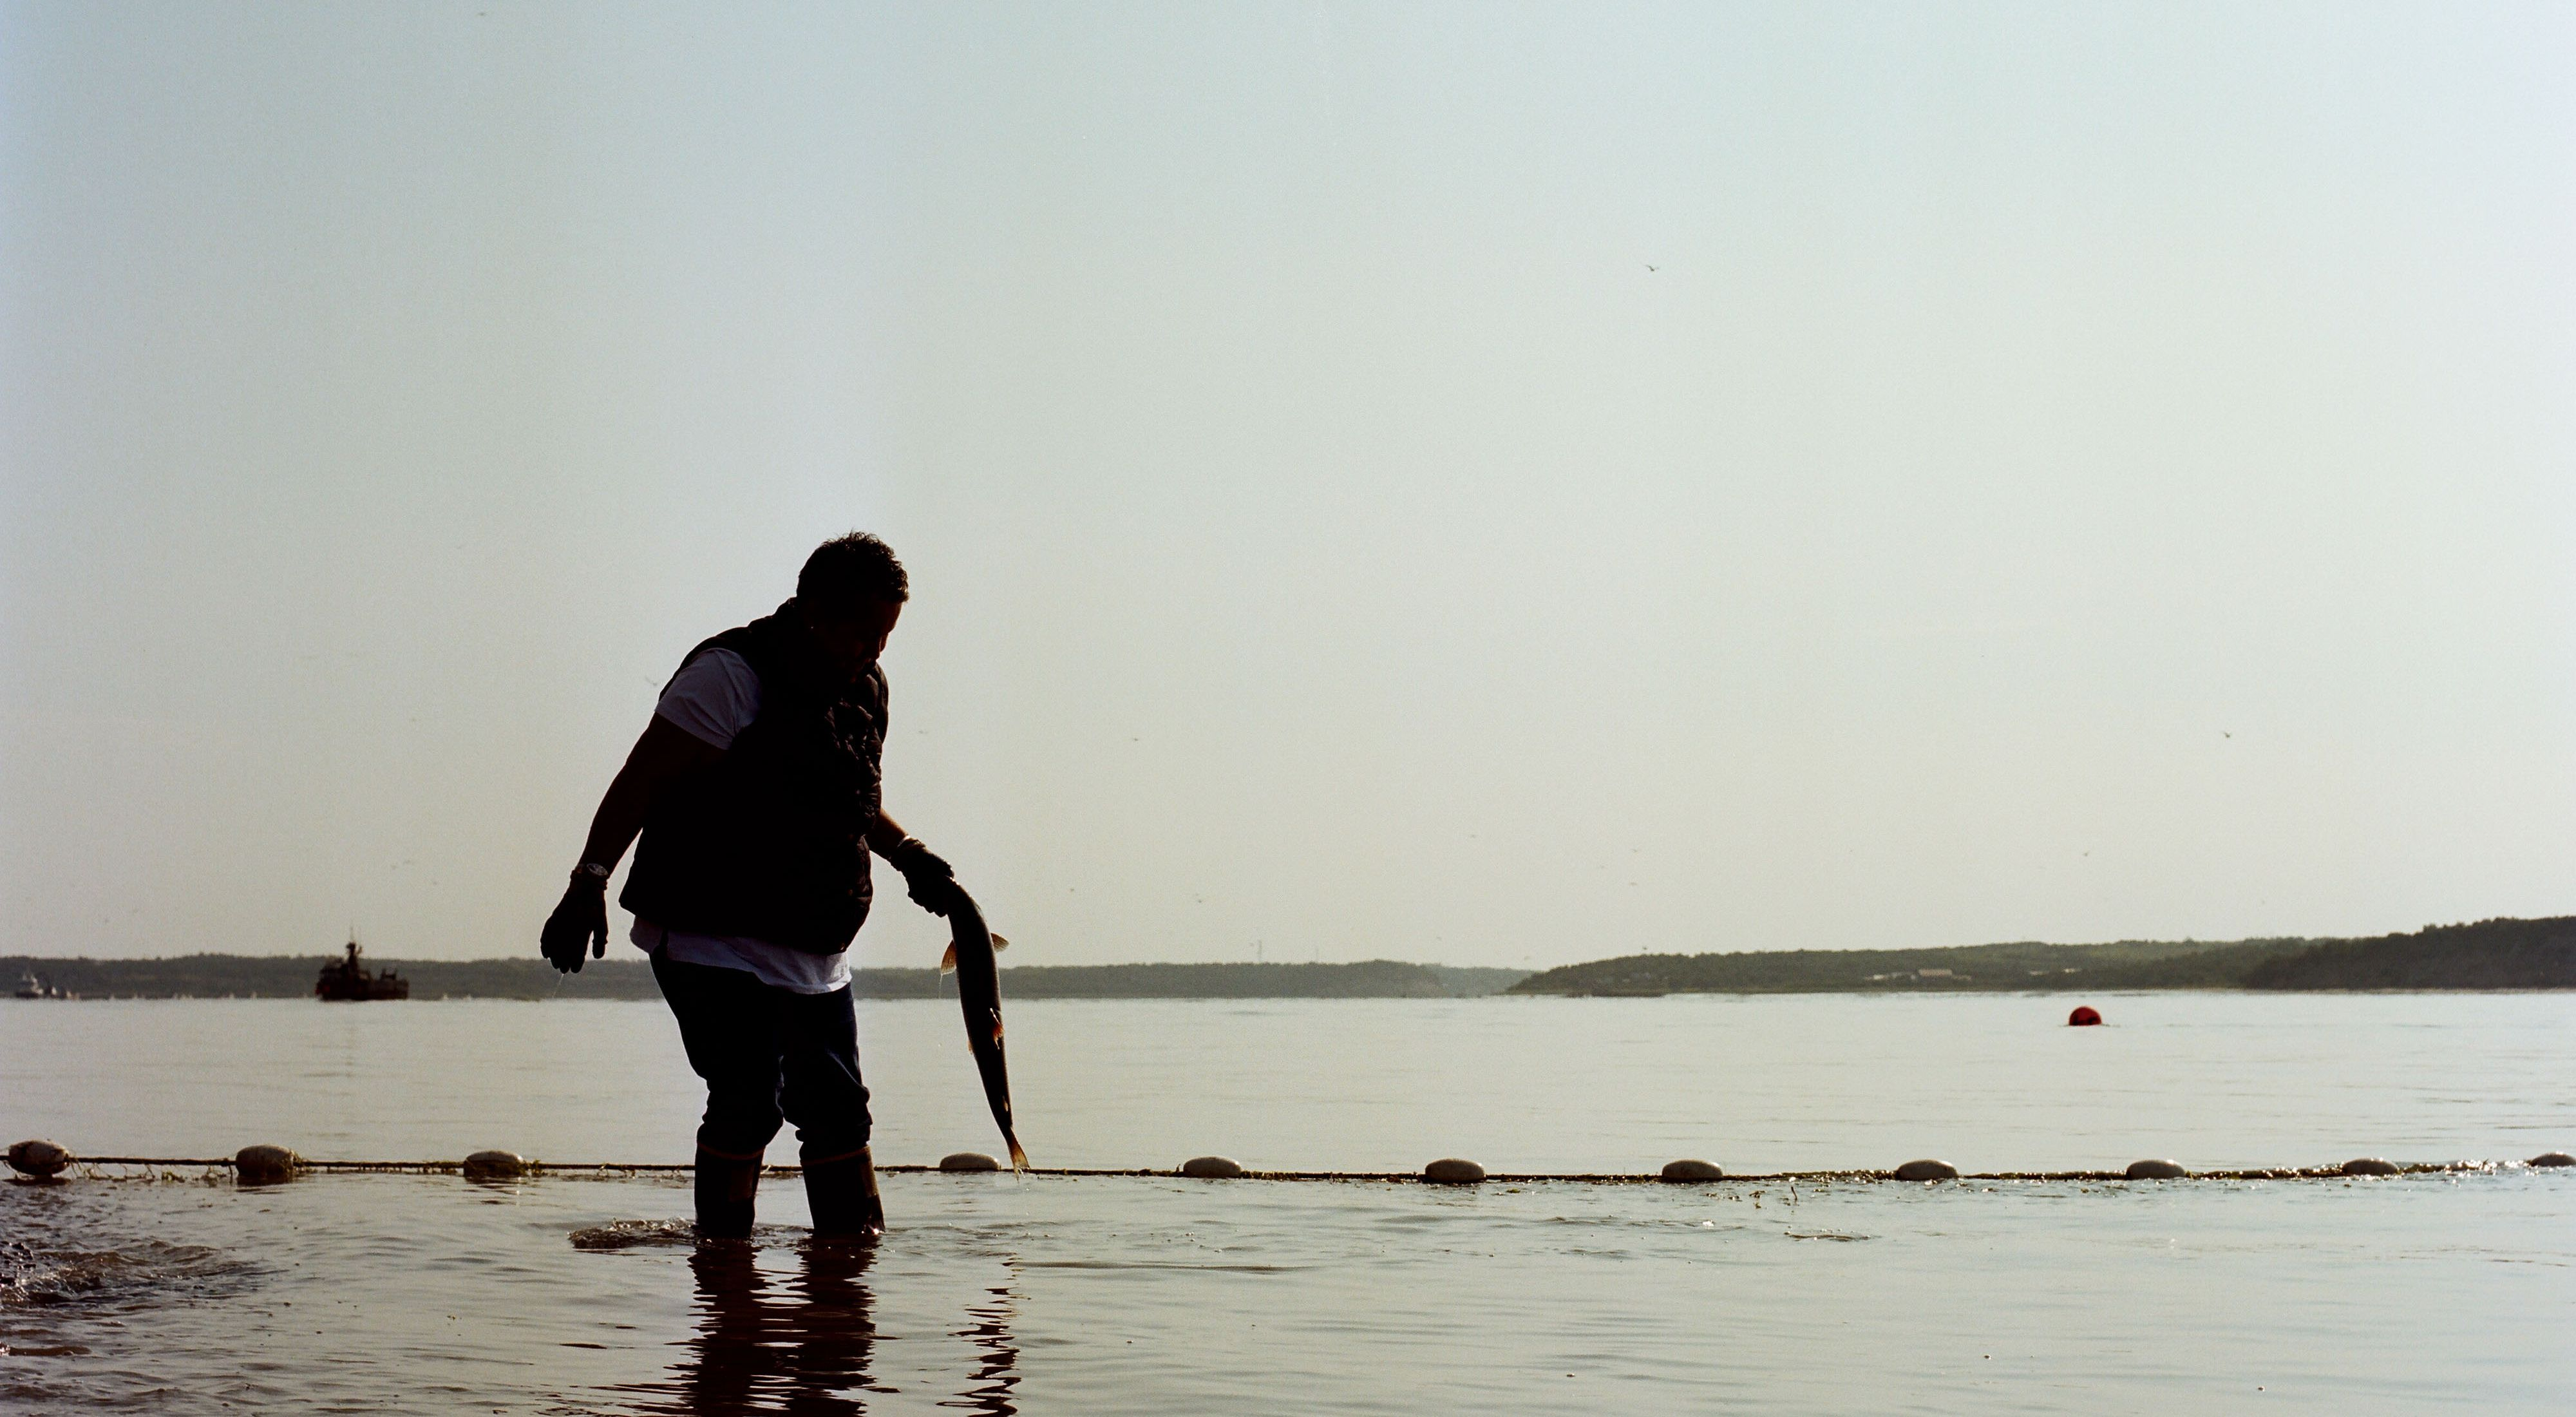 woman wades in water with fish in hand, silhouetted against a body of water with ships and buoys in distance